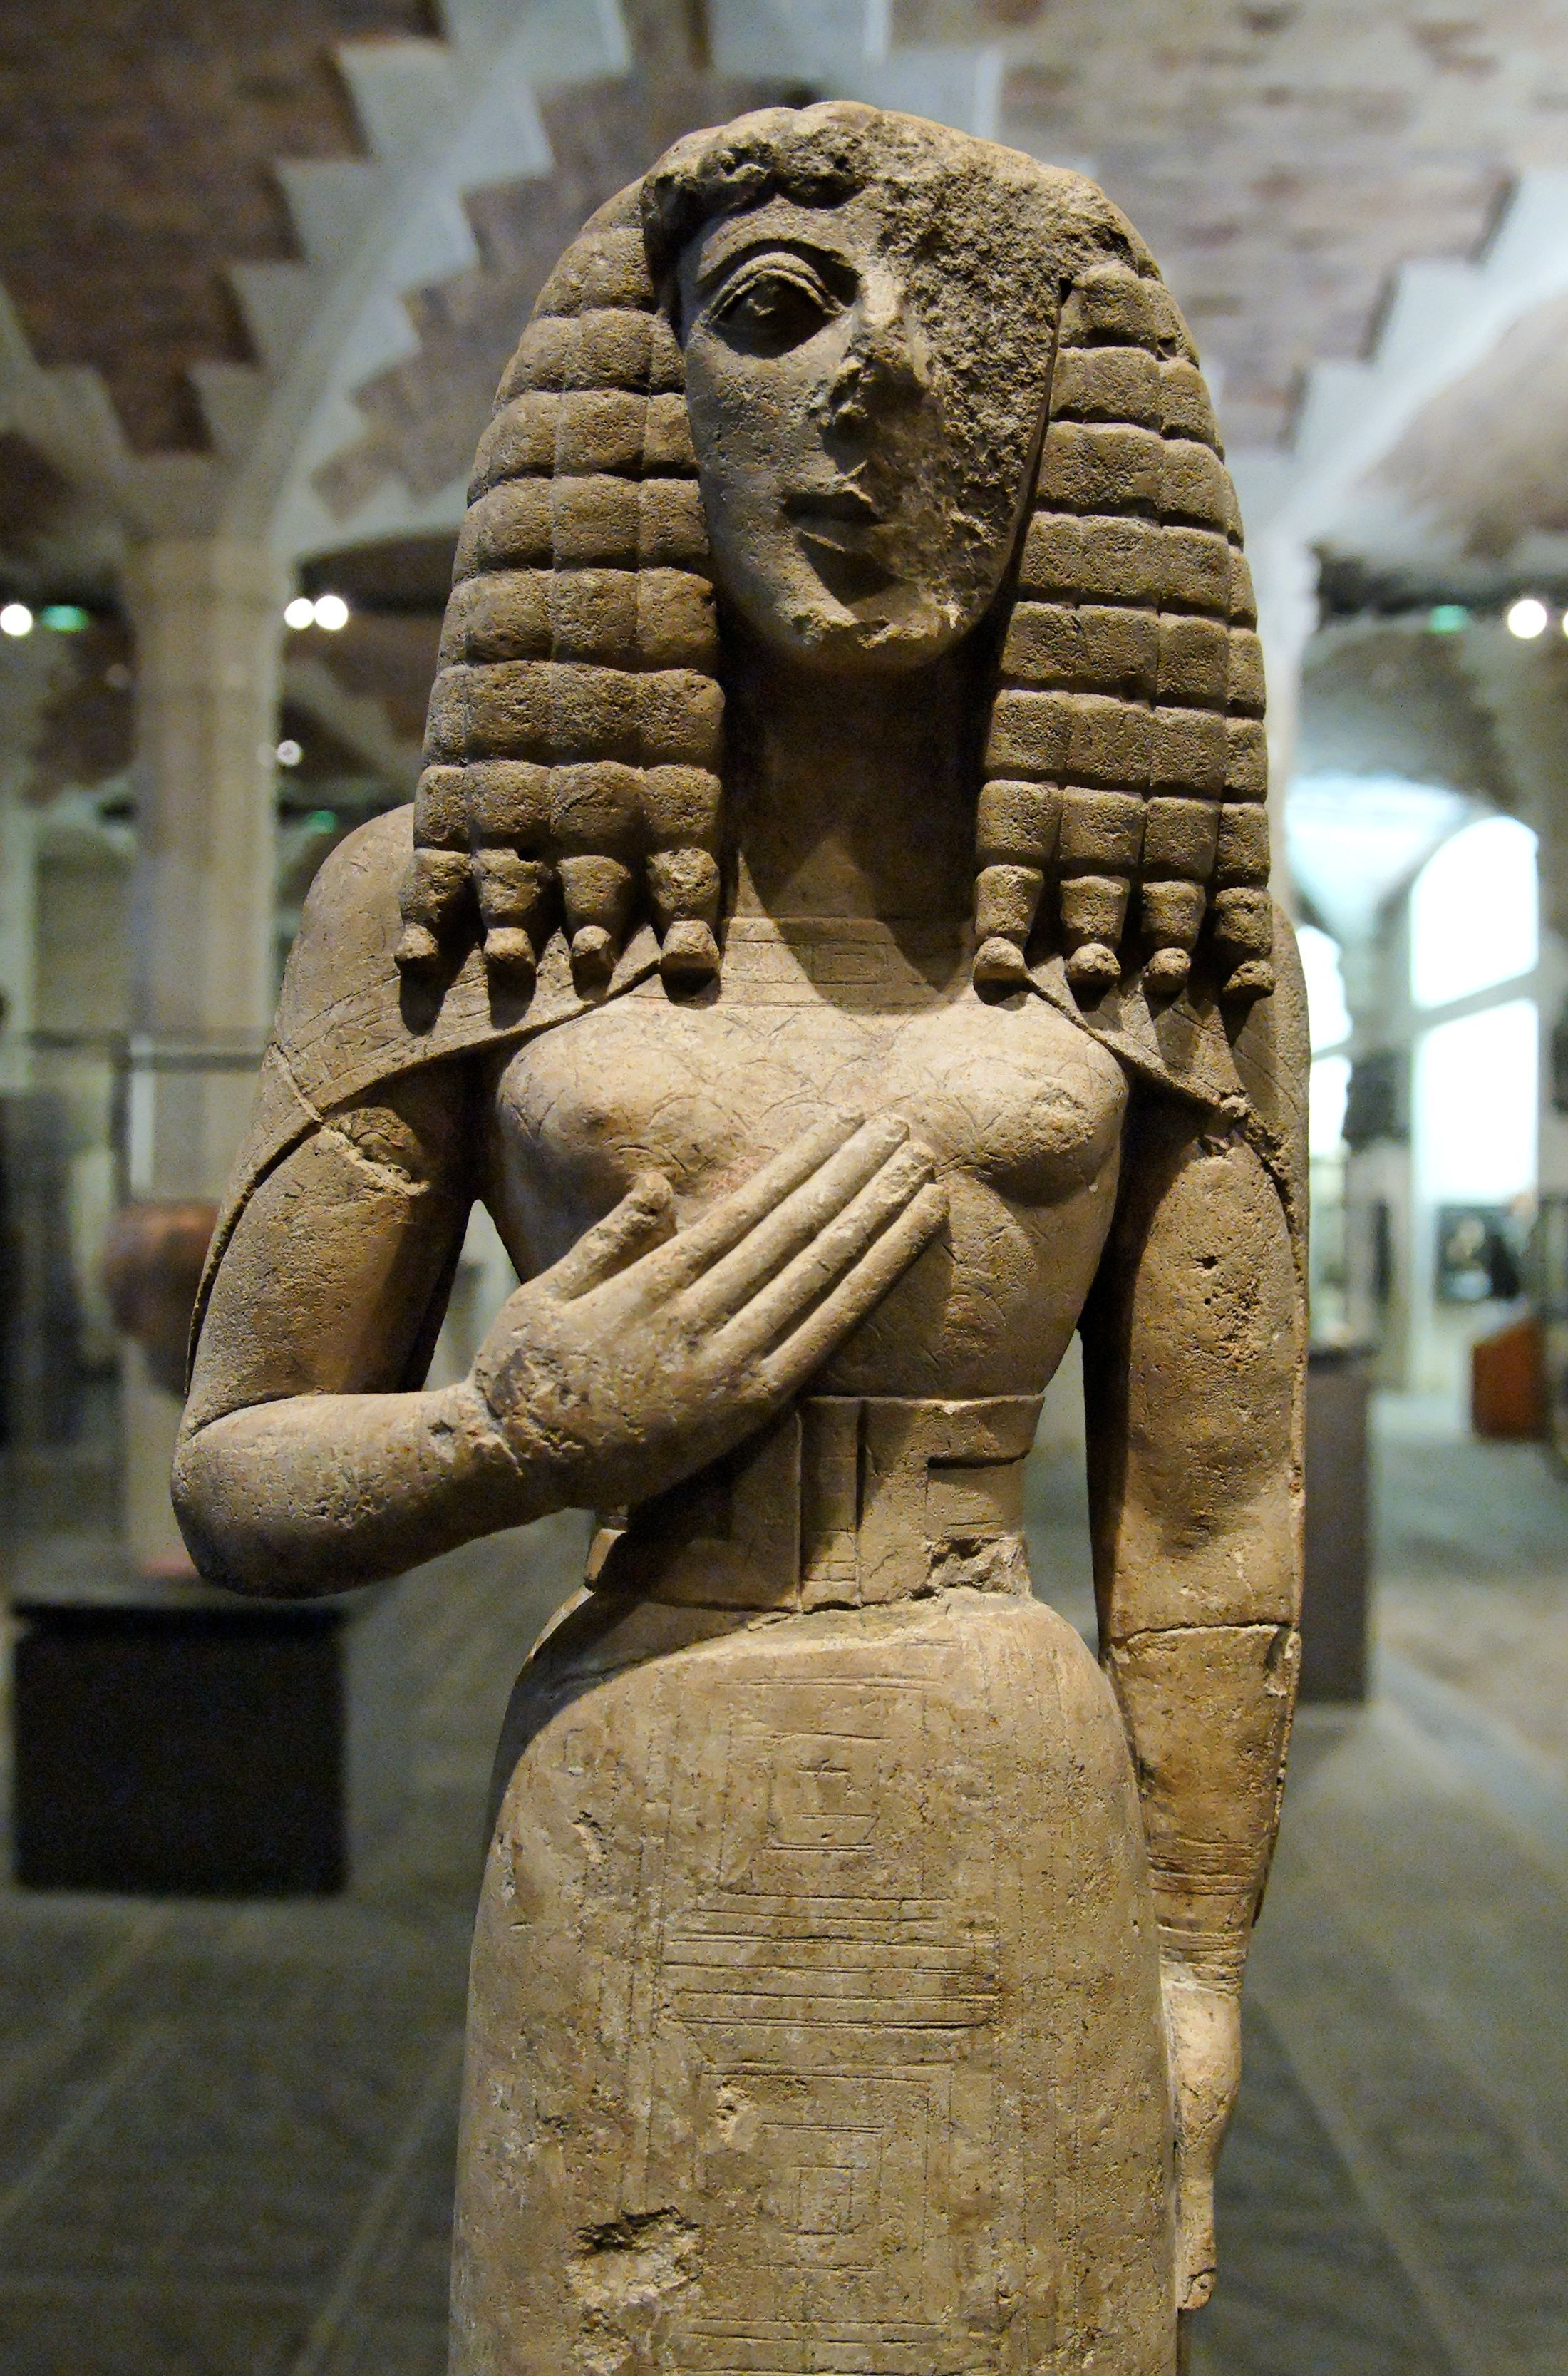 Kore Goddess Pregnant Good early archaic sculpture that exhibits characteristics from the